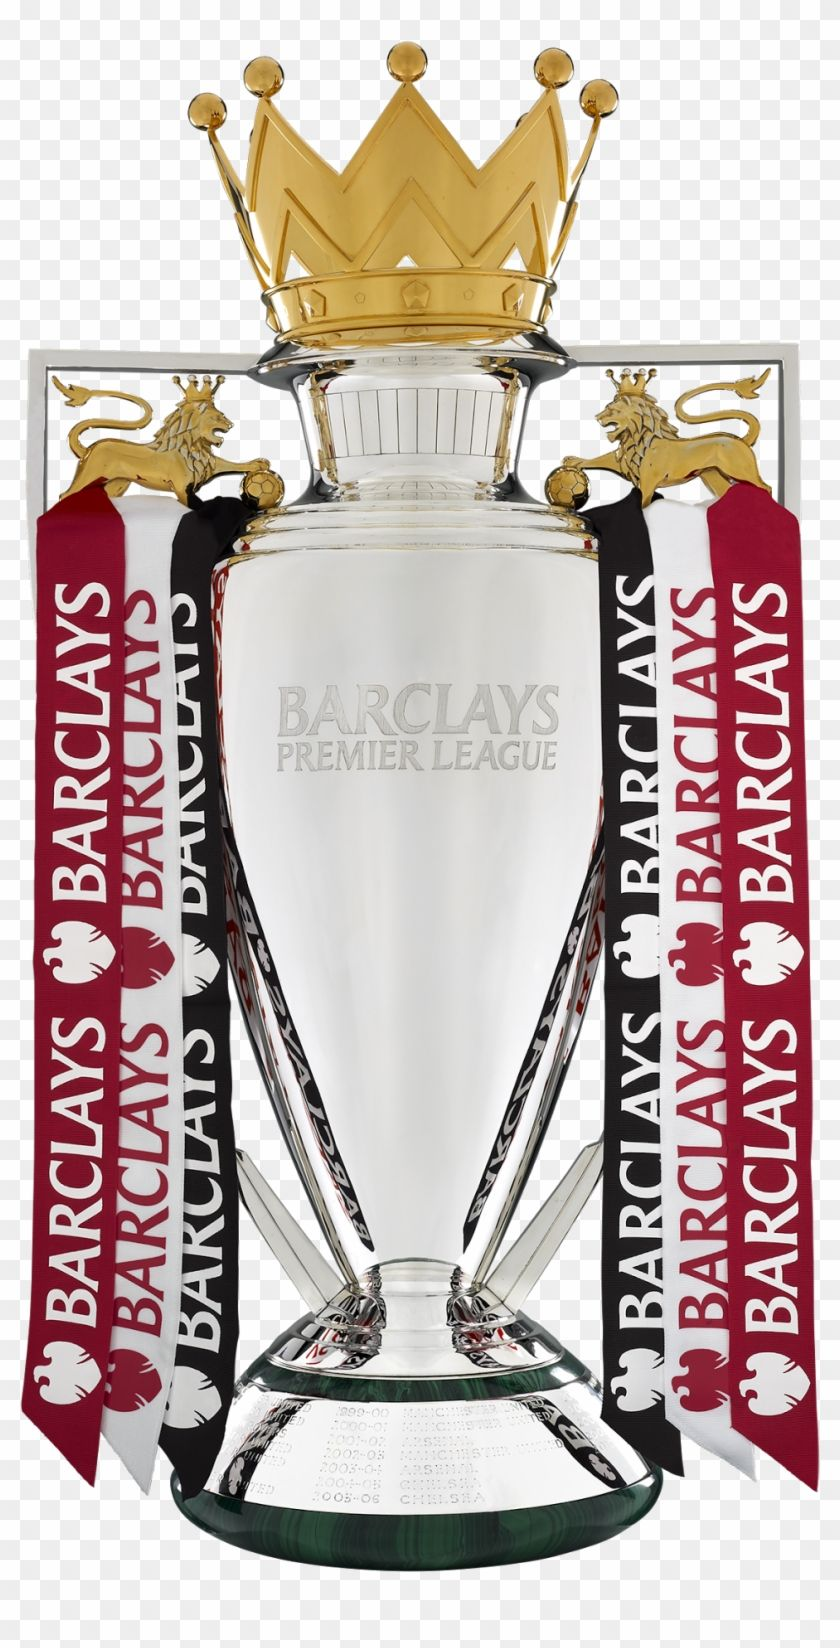 Find Hd 1st Place The Premier League Trophy Hd Png Download To Search And Download More Free Tr Premier League Barclay Premier League Premier League Football